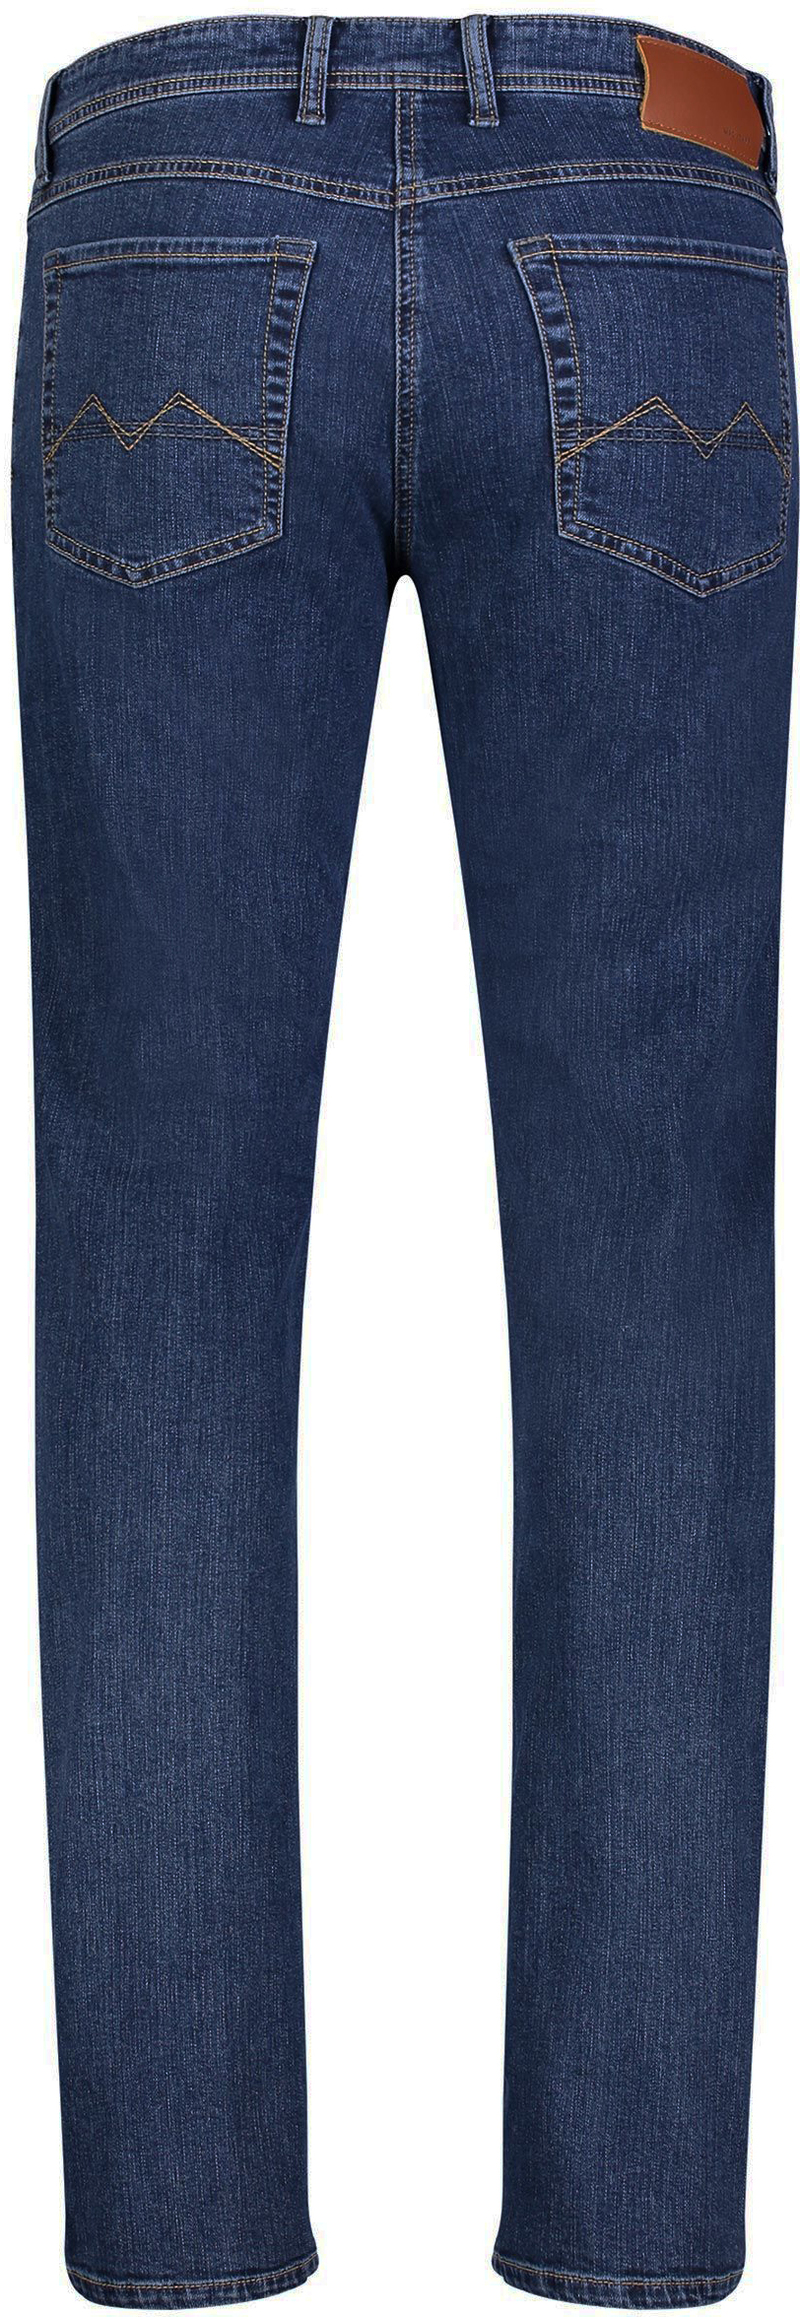 Mac Arne Jeans Light Used Blue Foto 1